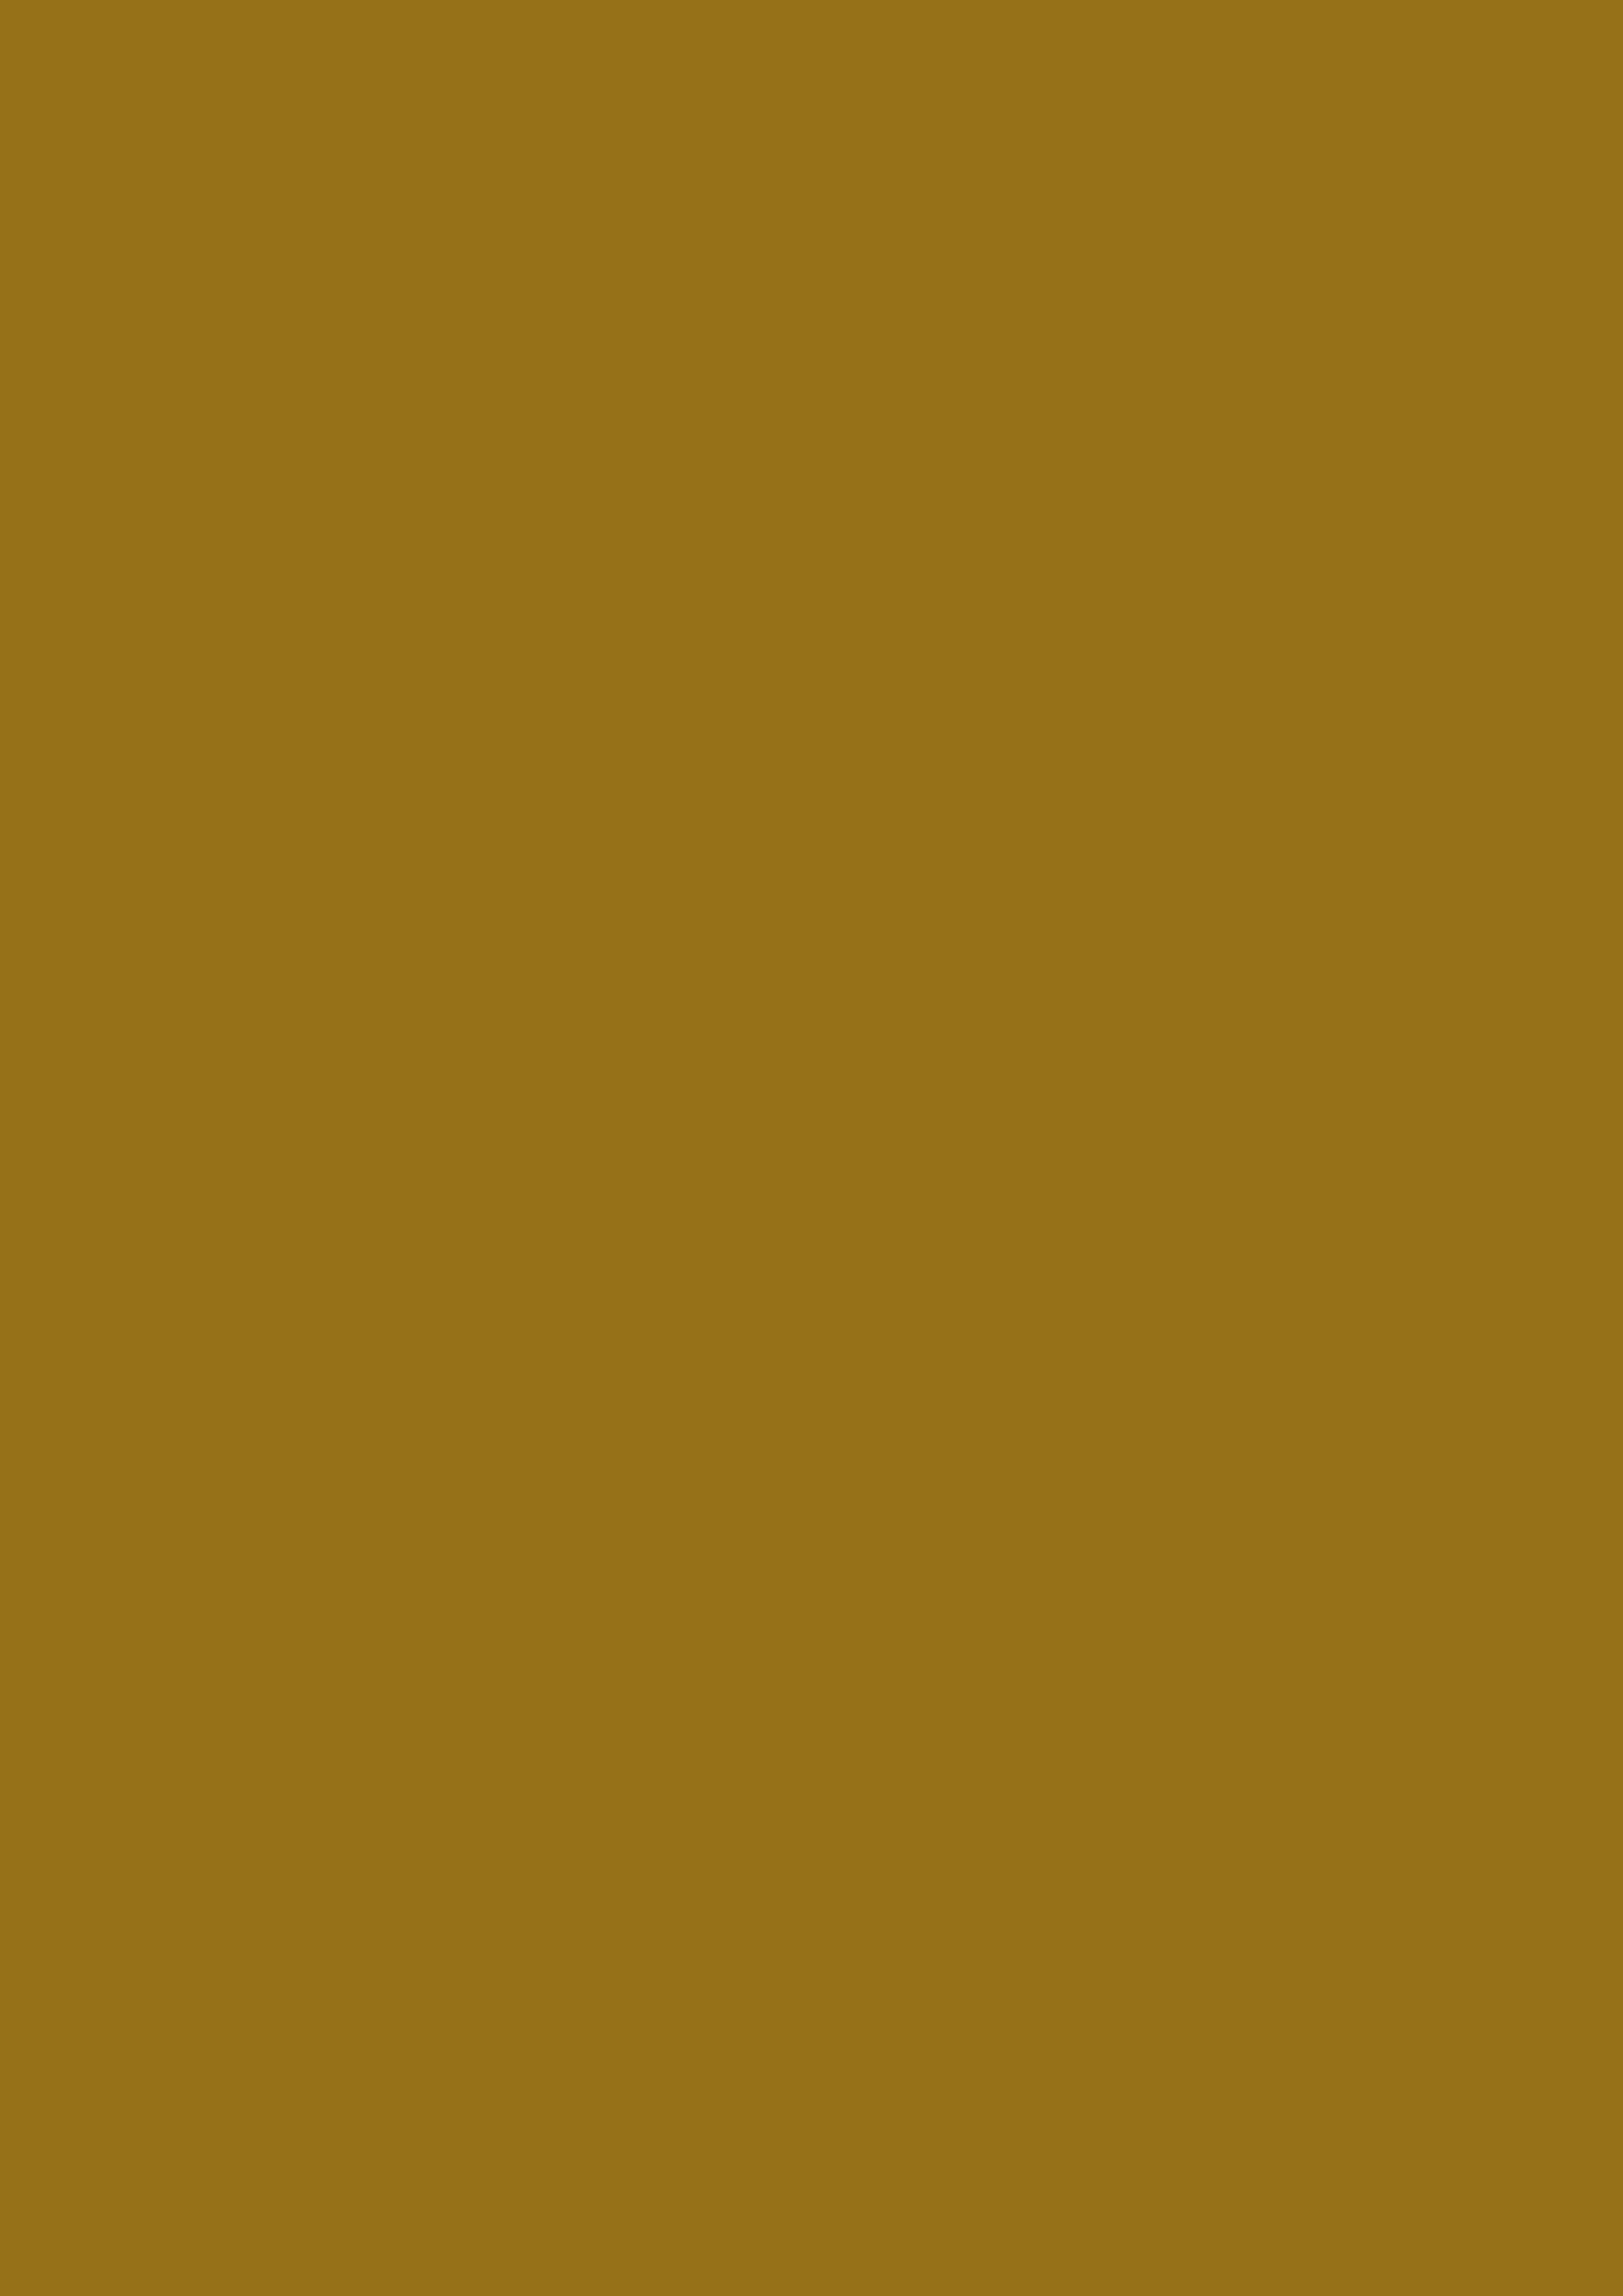 2480x3508 Sandy Taupe Solid Color Background